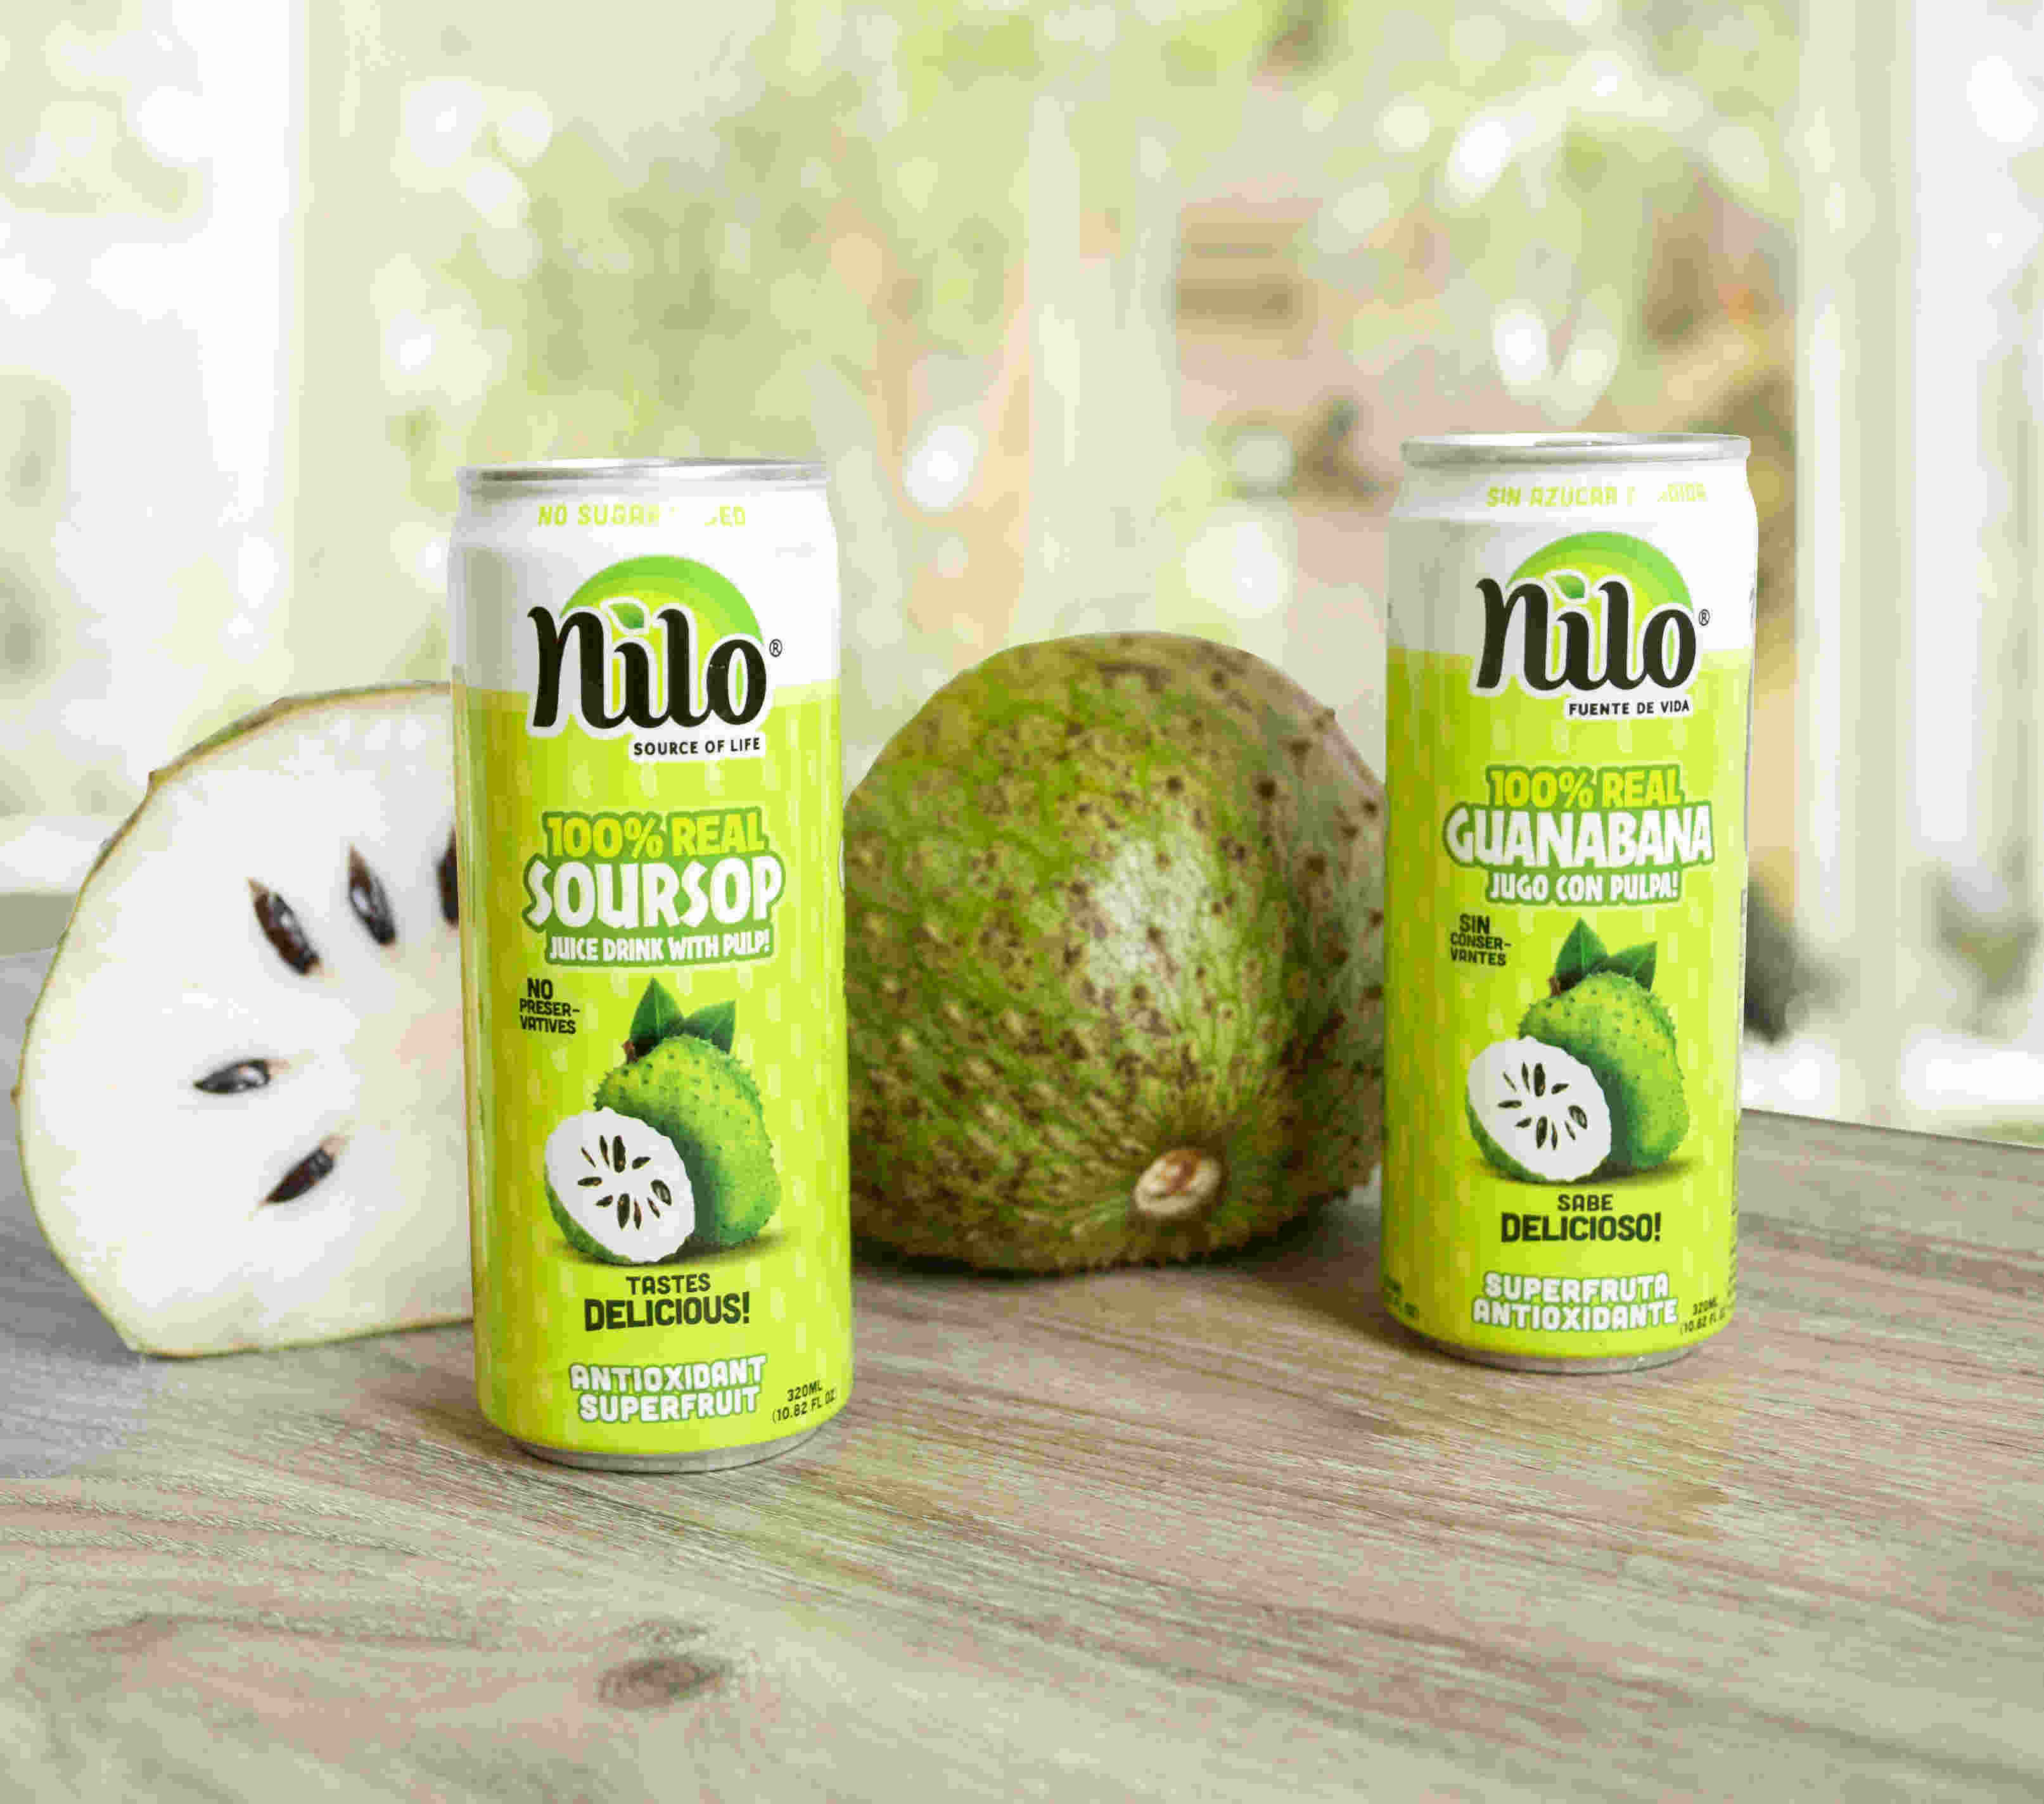 Nilo® Brand Introduces New Miracle Superfruit Juice in the Market